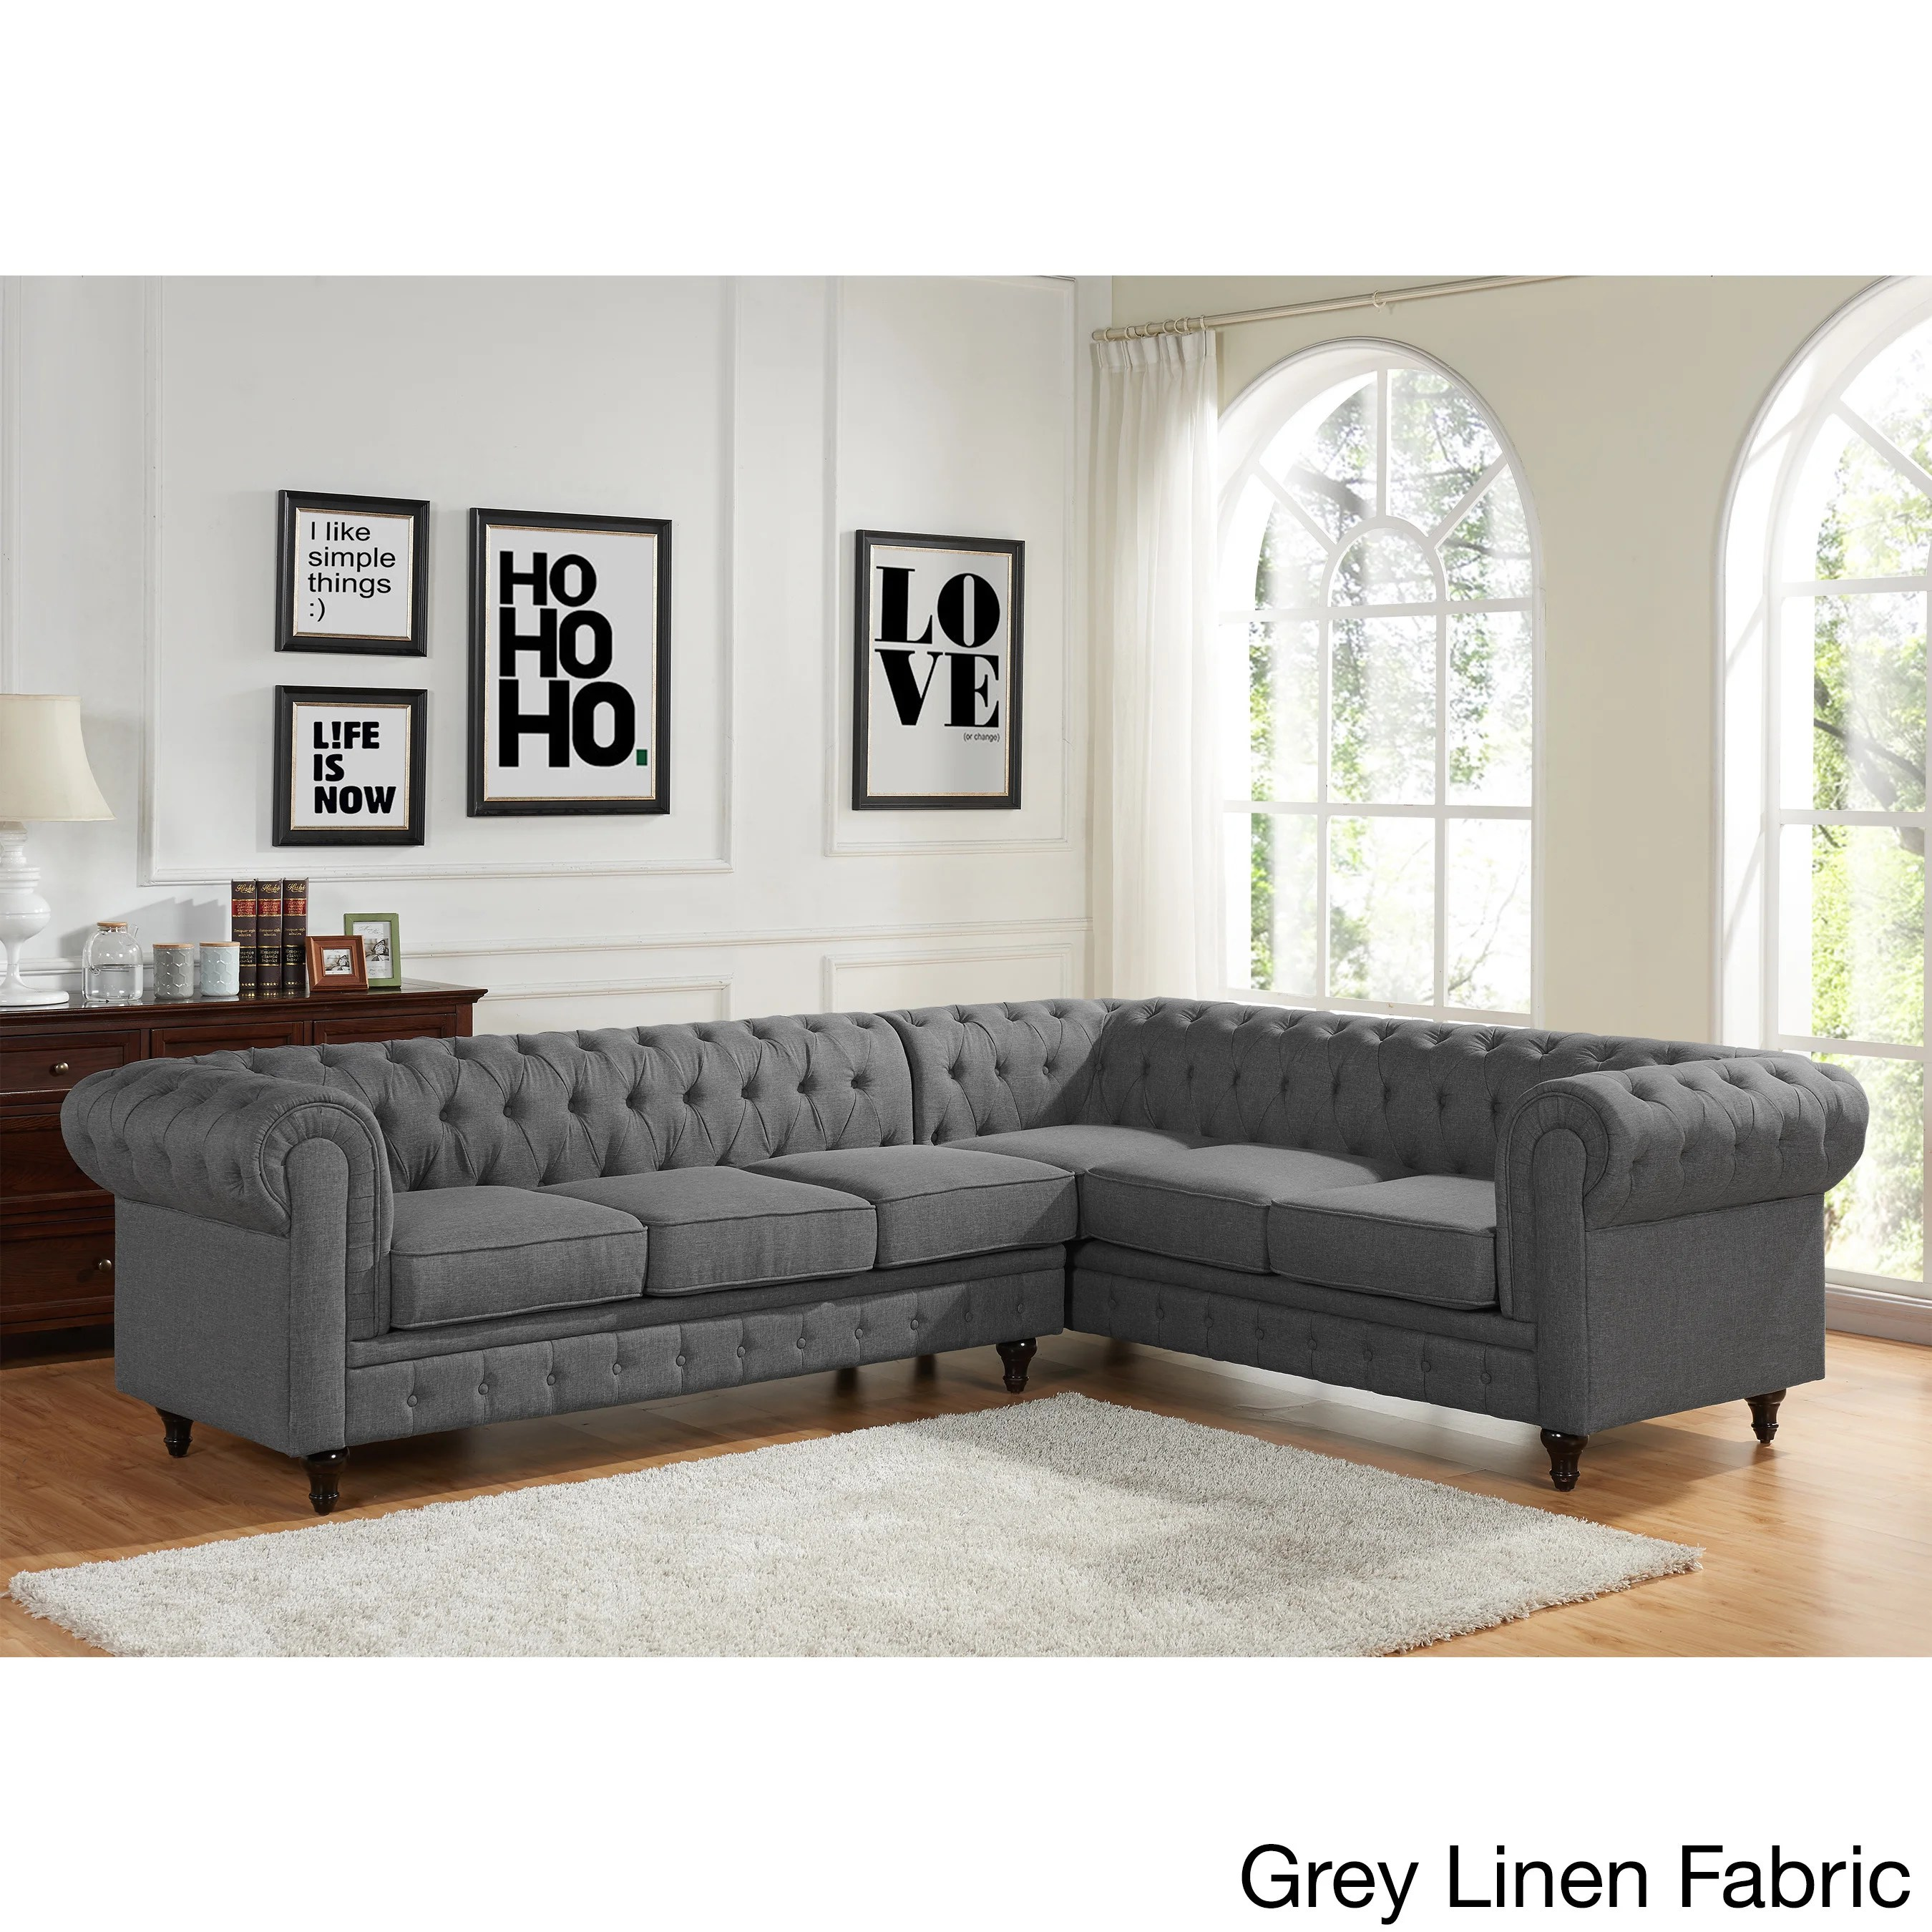 rolled arm sofa chaise convertible bed repair prices sophia modern style tufted left facing